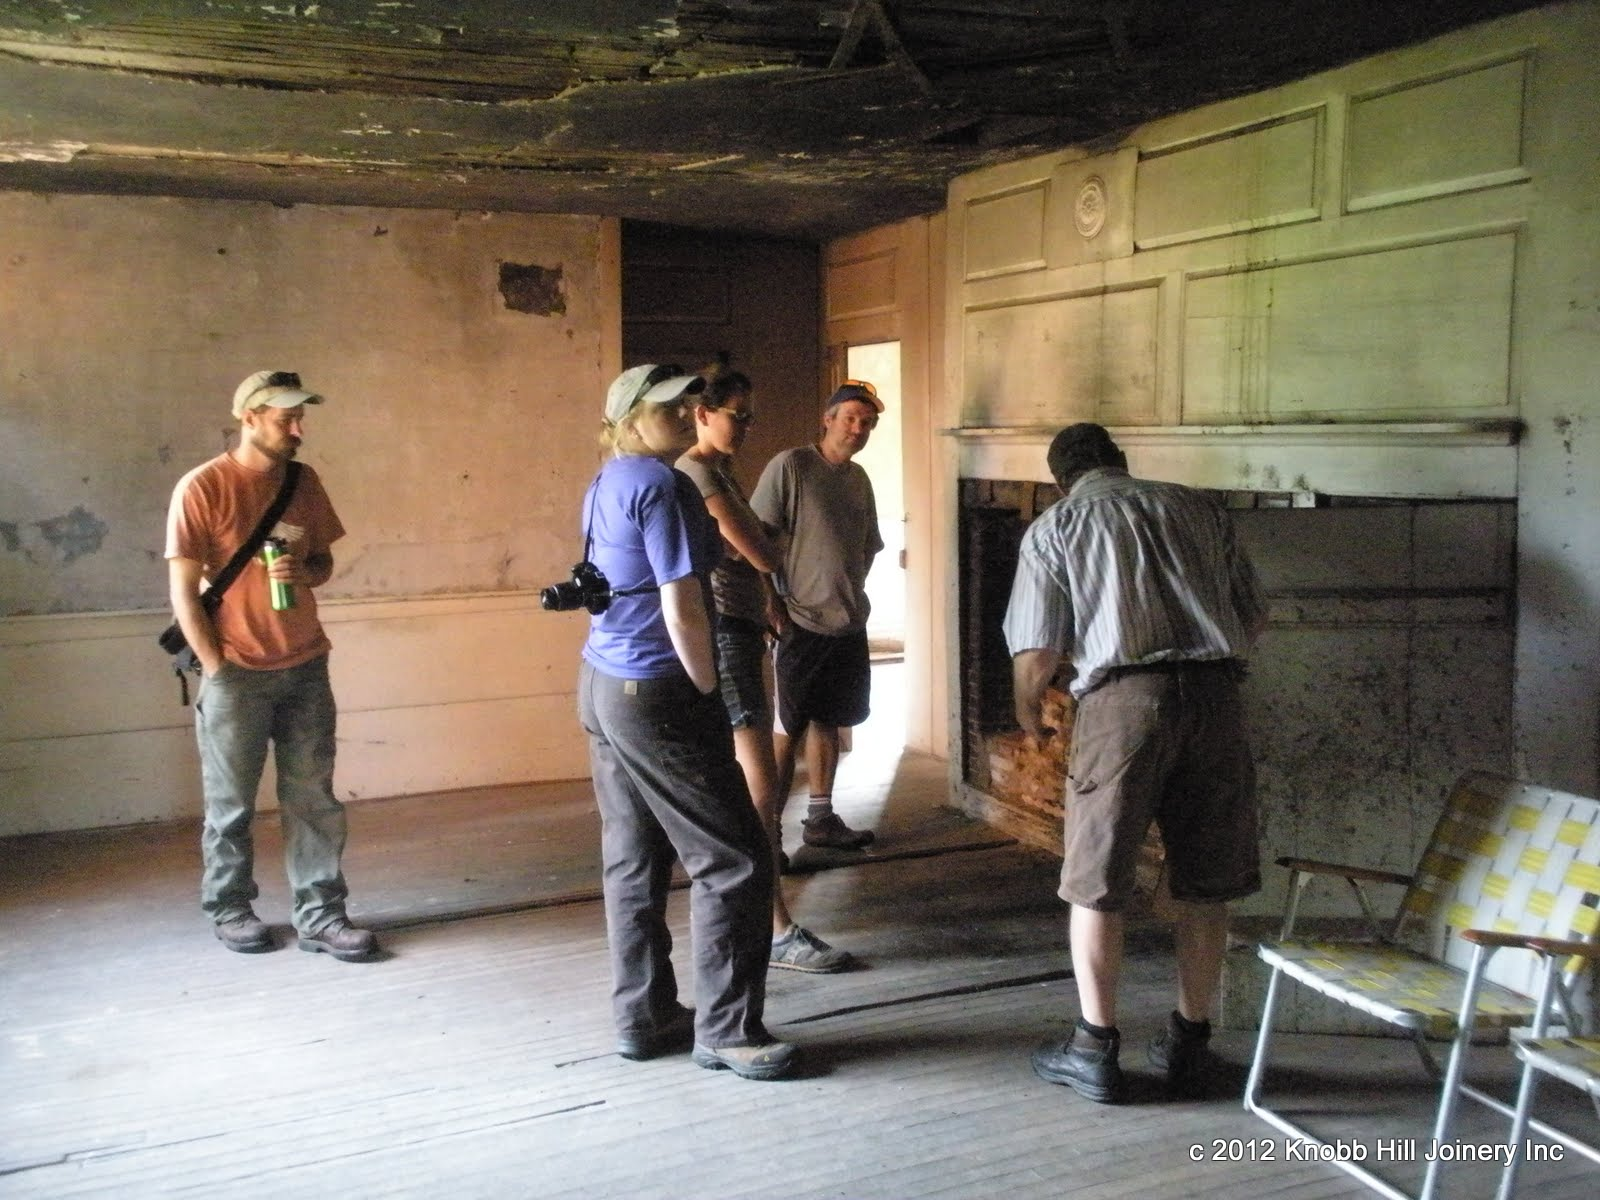 Jamie Duggan explains historic masonry at the Theron Boyd House.